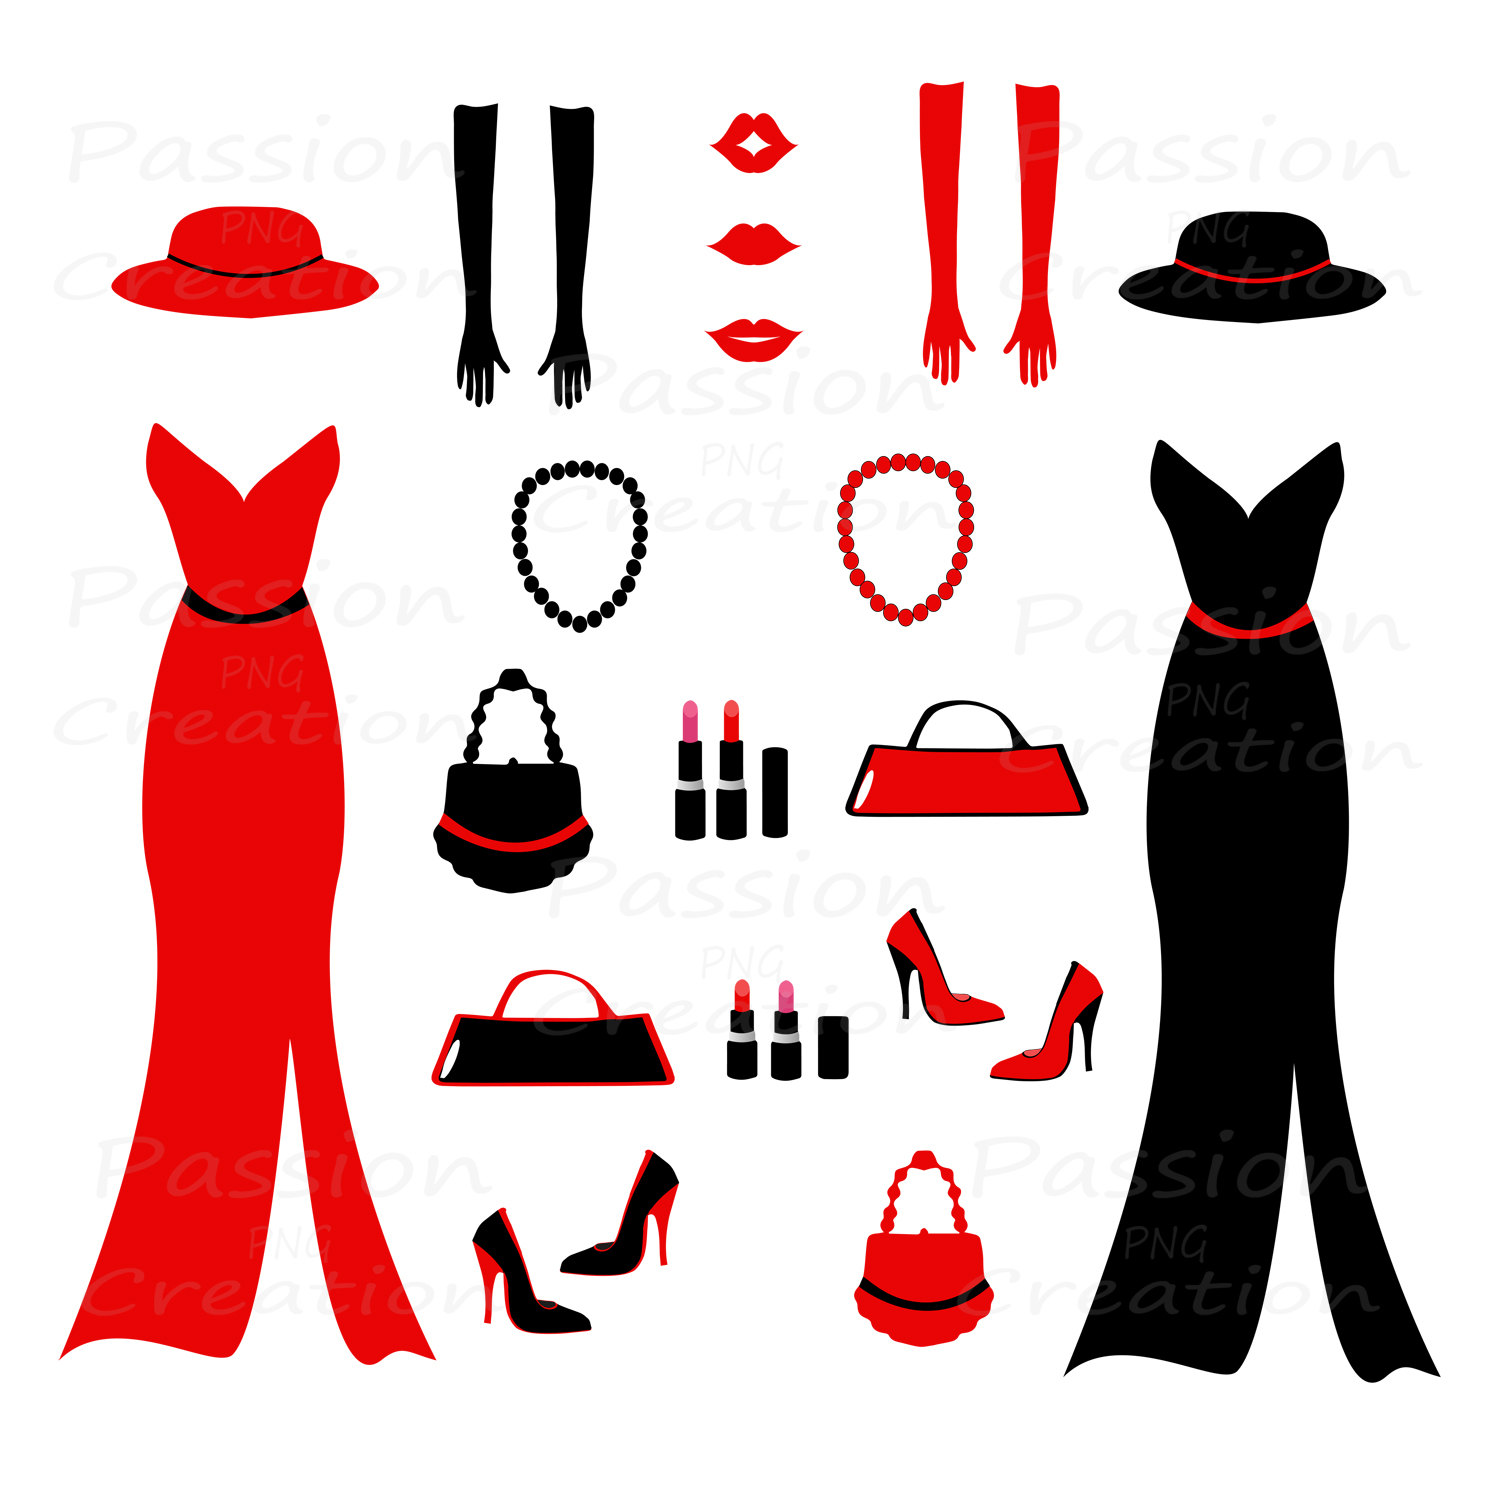 Fancy items clipart vector freeuse library Free Prom Shoes Clipart, Download Free Clip Art, Free Clip Art on ... vector freeuse library